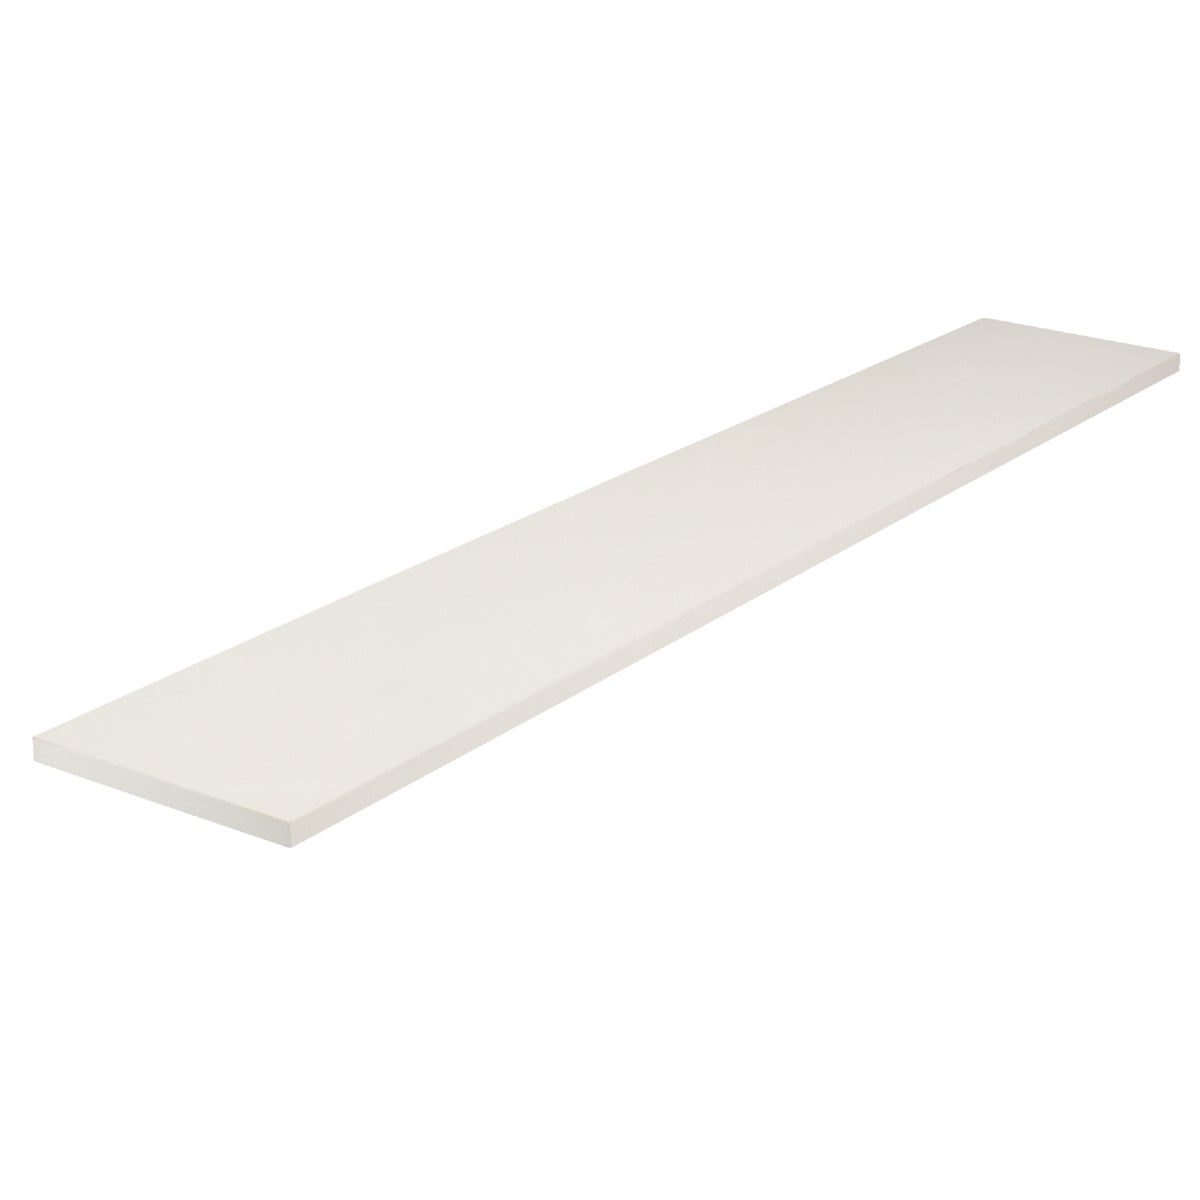 8X48 WHITE SHELF - 1980WH8X48 by Knape & Vogt Mfg Co